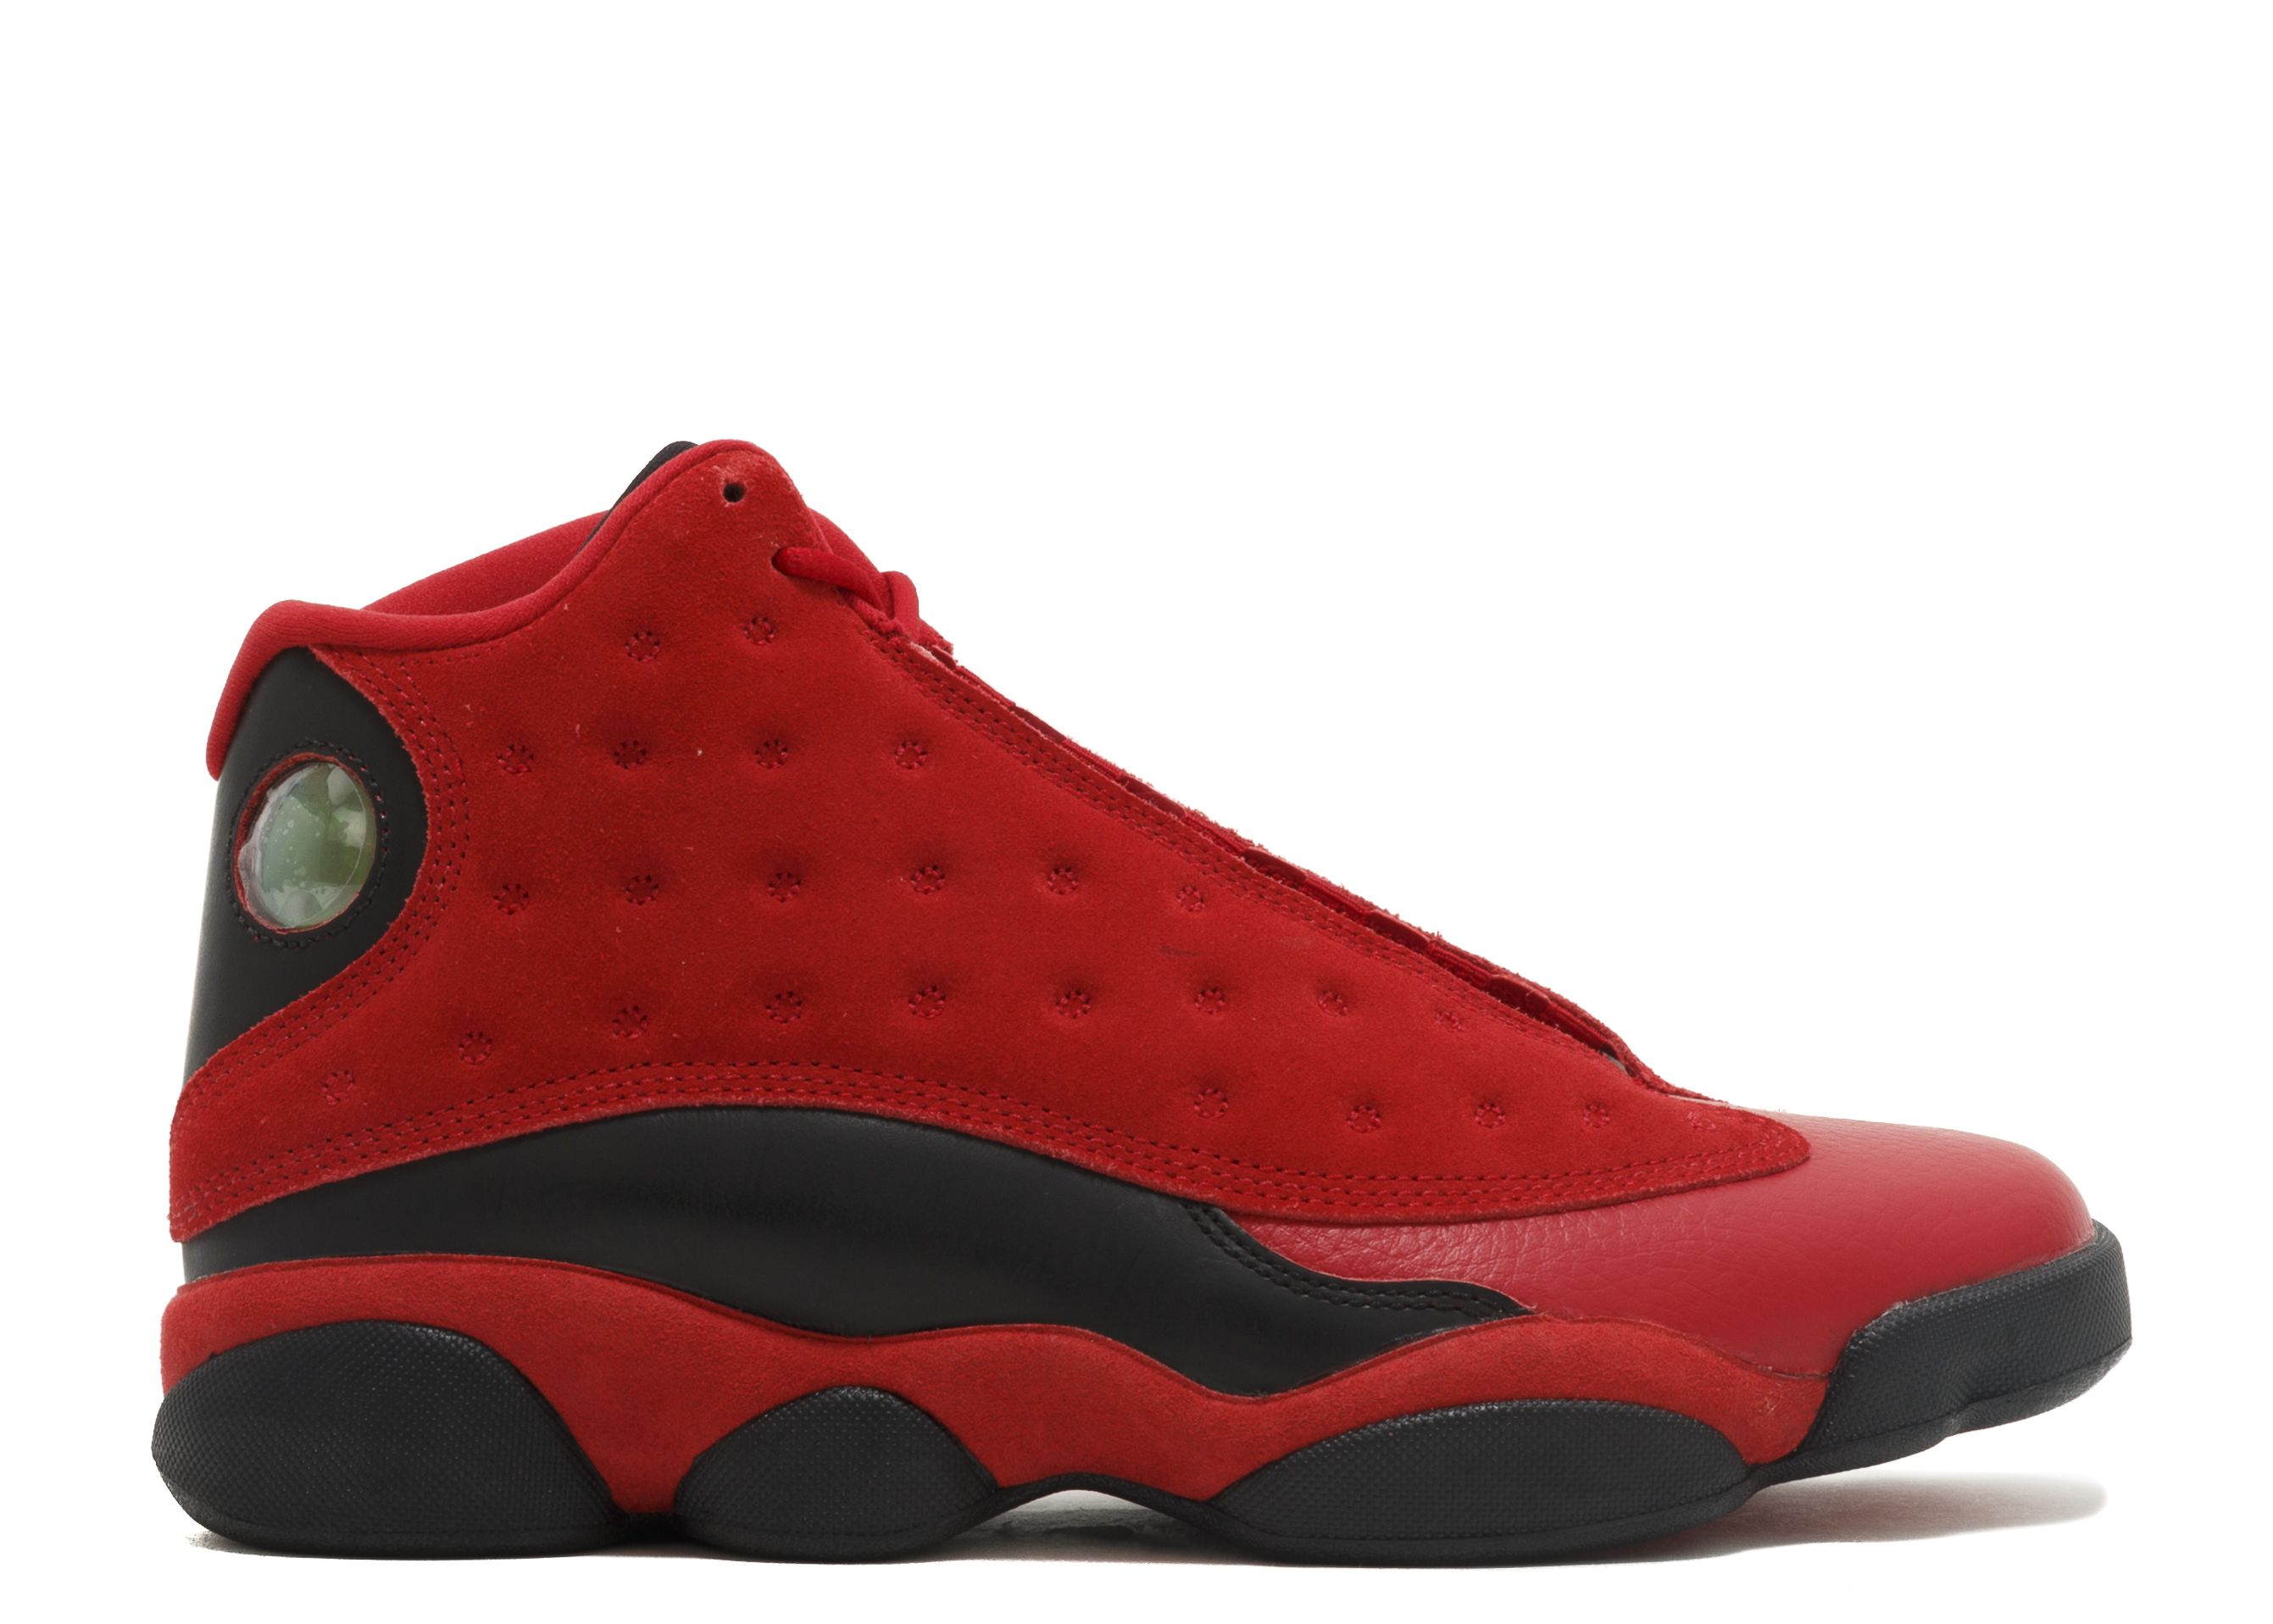 buy online 0b45a 10e1b AIR JORDAN 13 RETRO SNGL DY